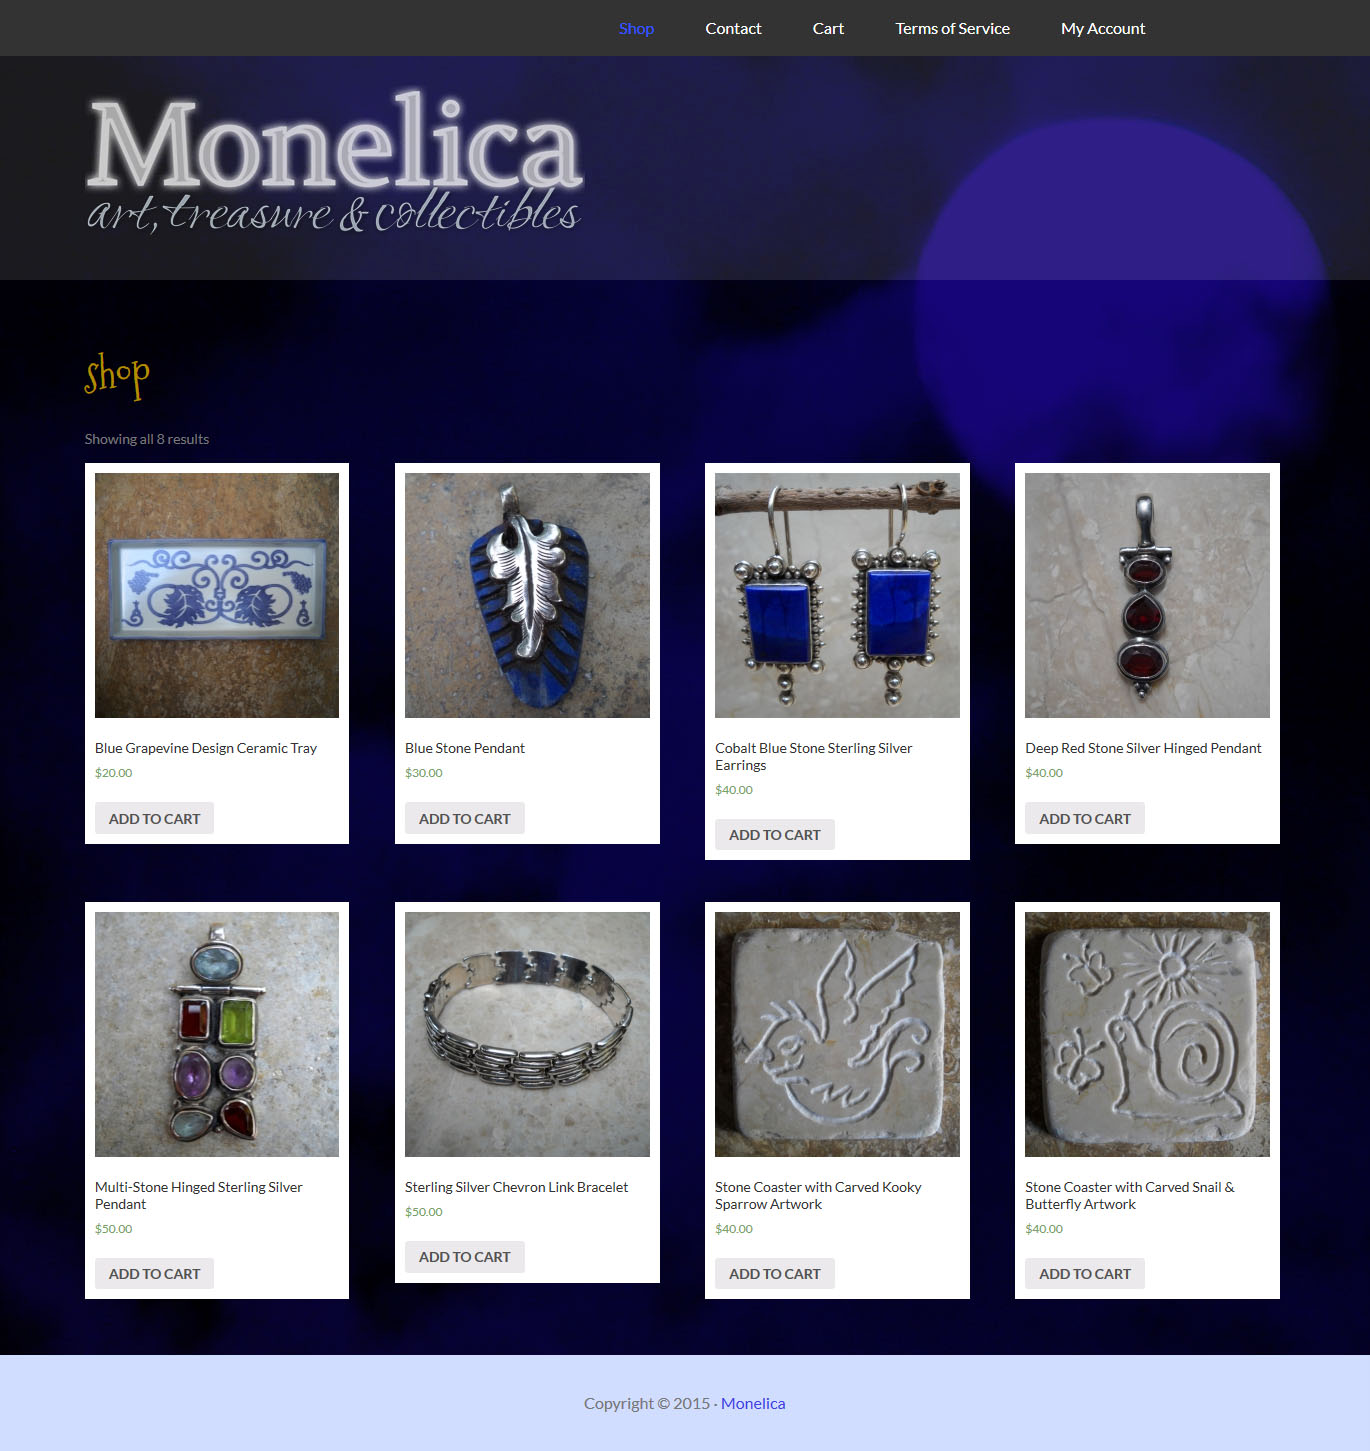 monelica.com WordPress eCommerce website design